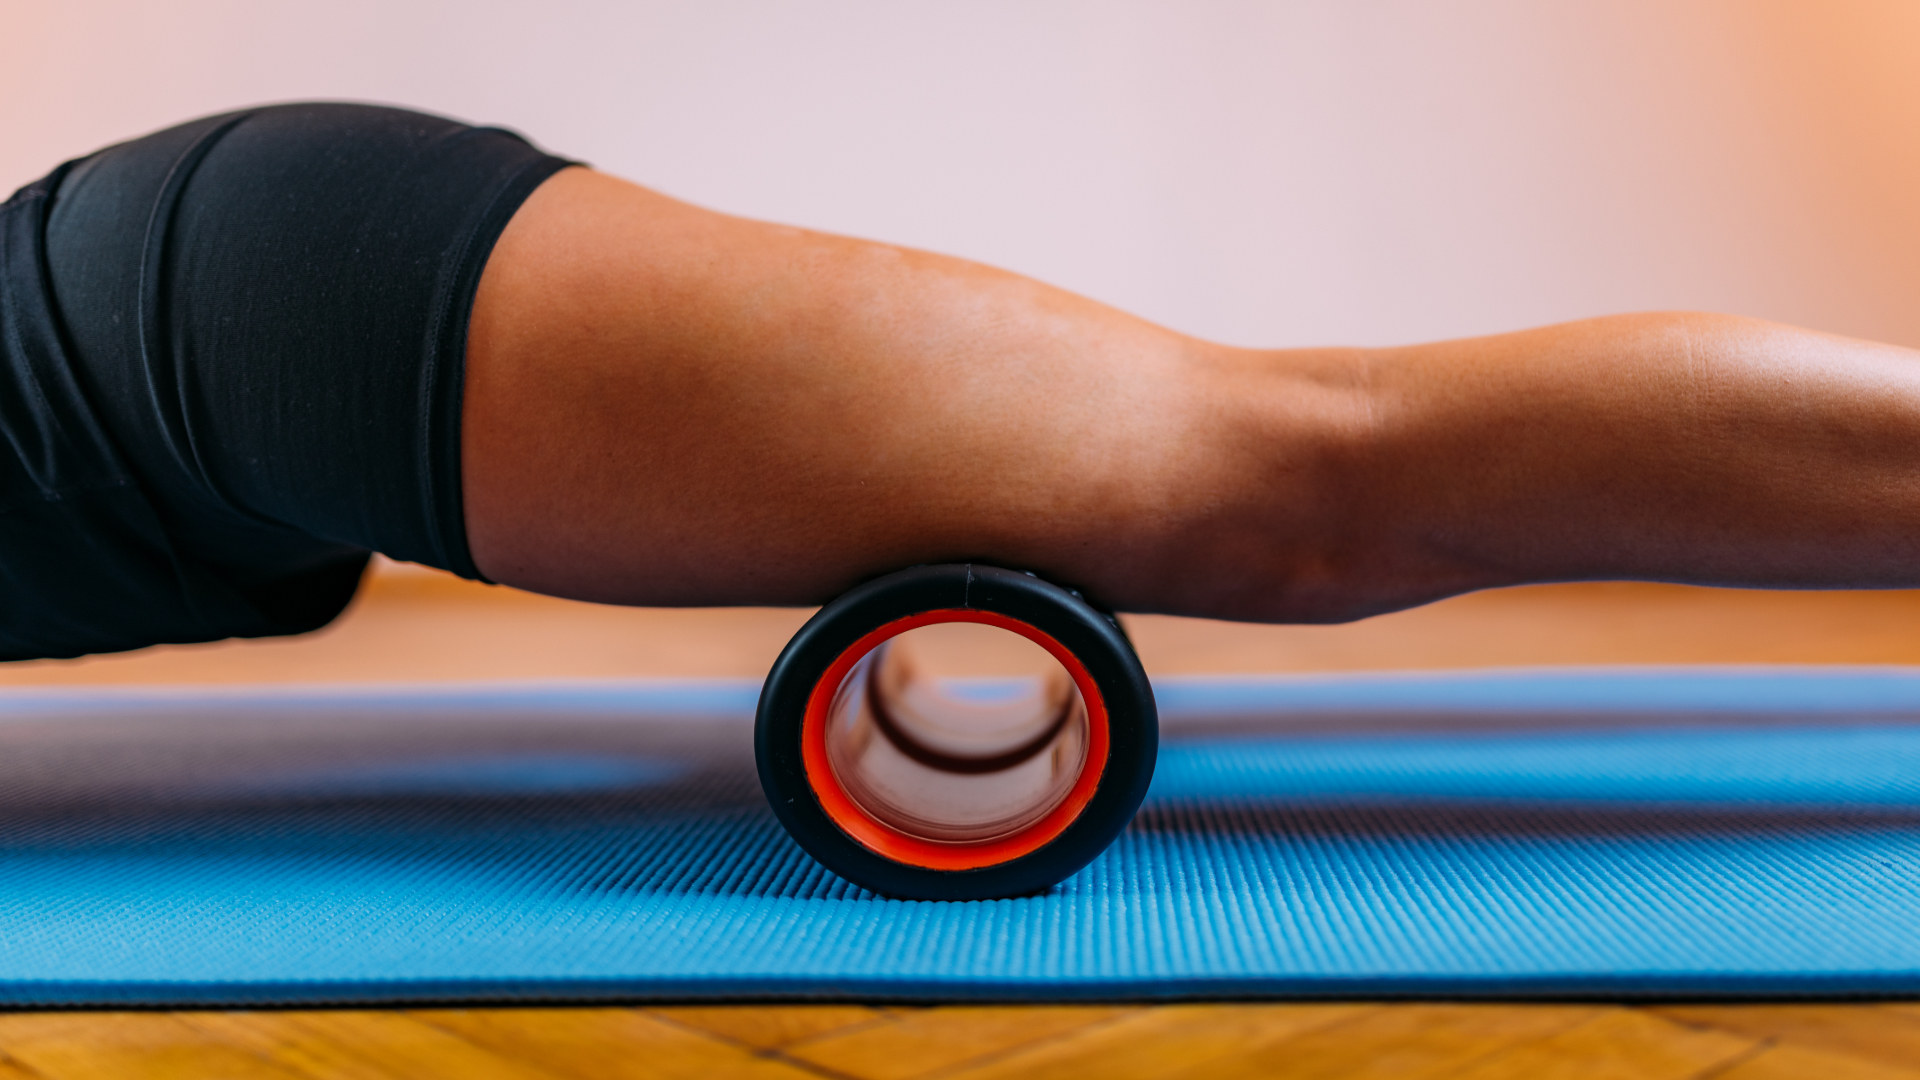 Foam Roller Quadriceps Self Massage at Home